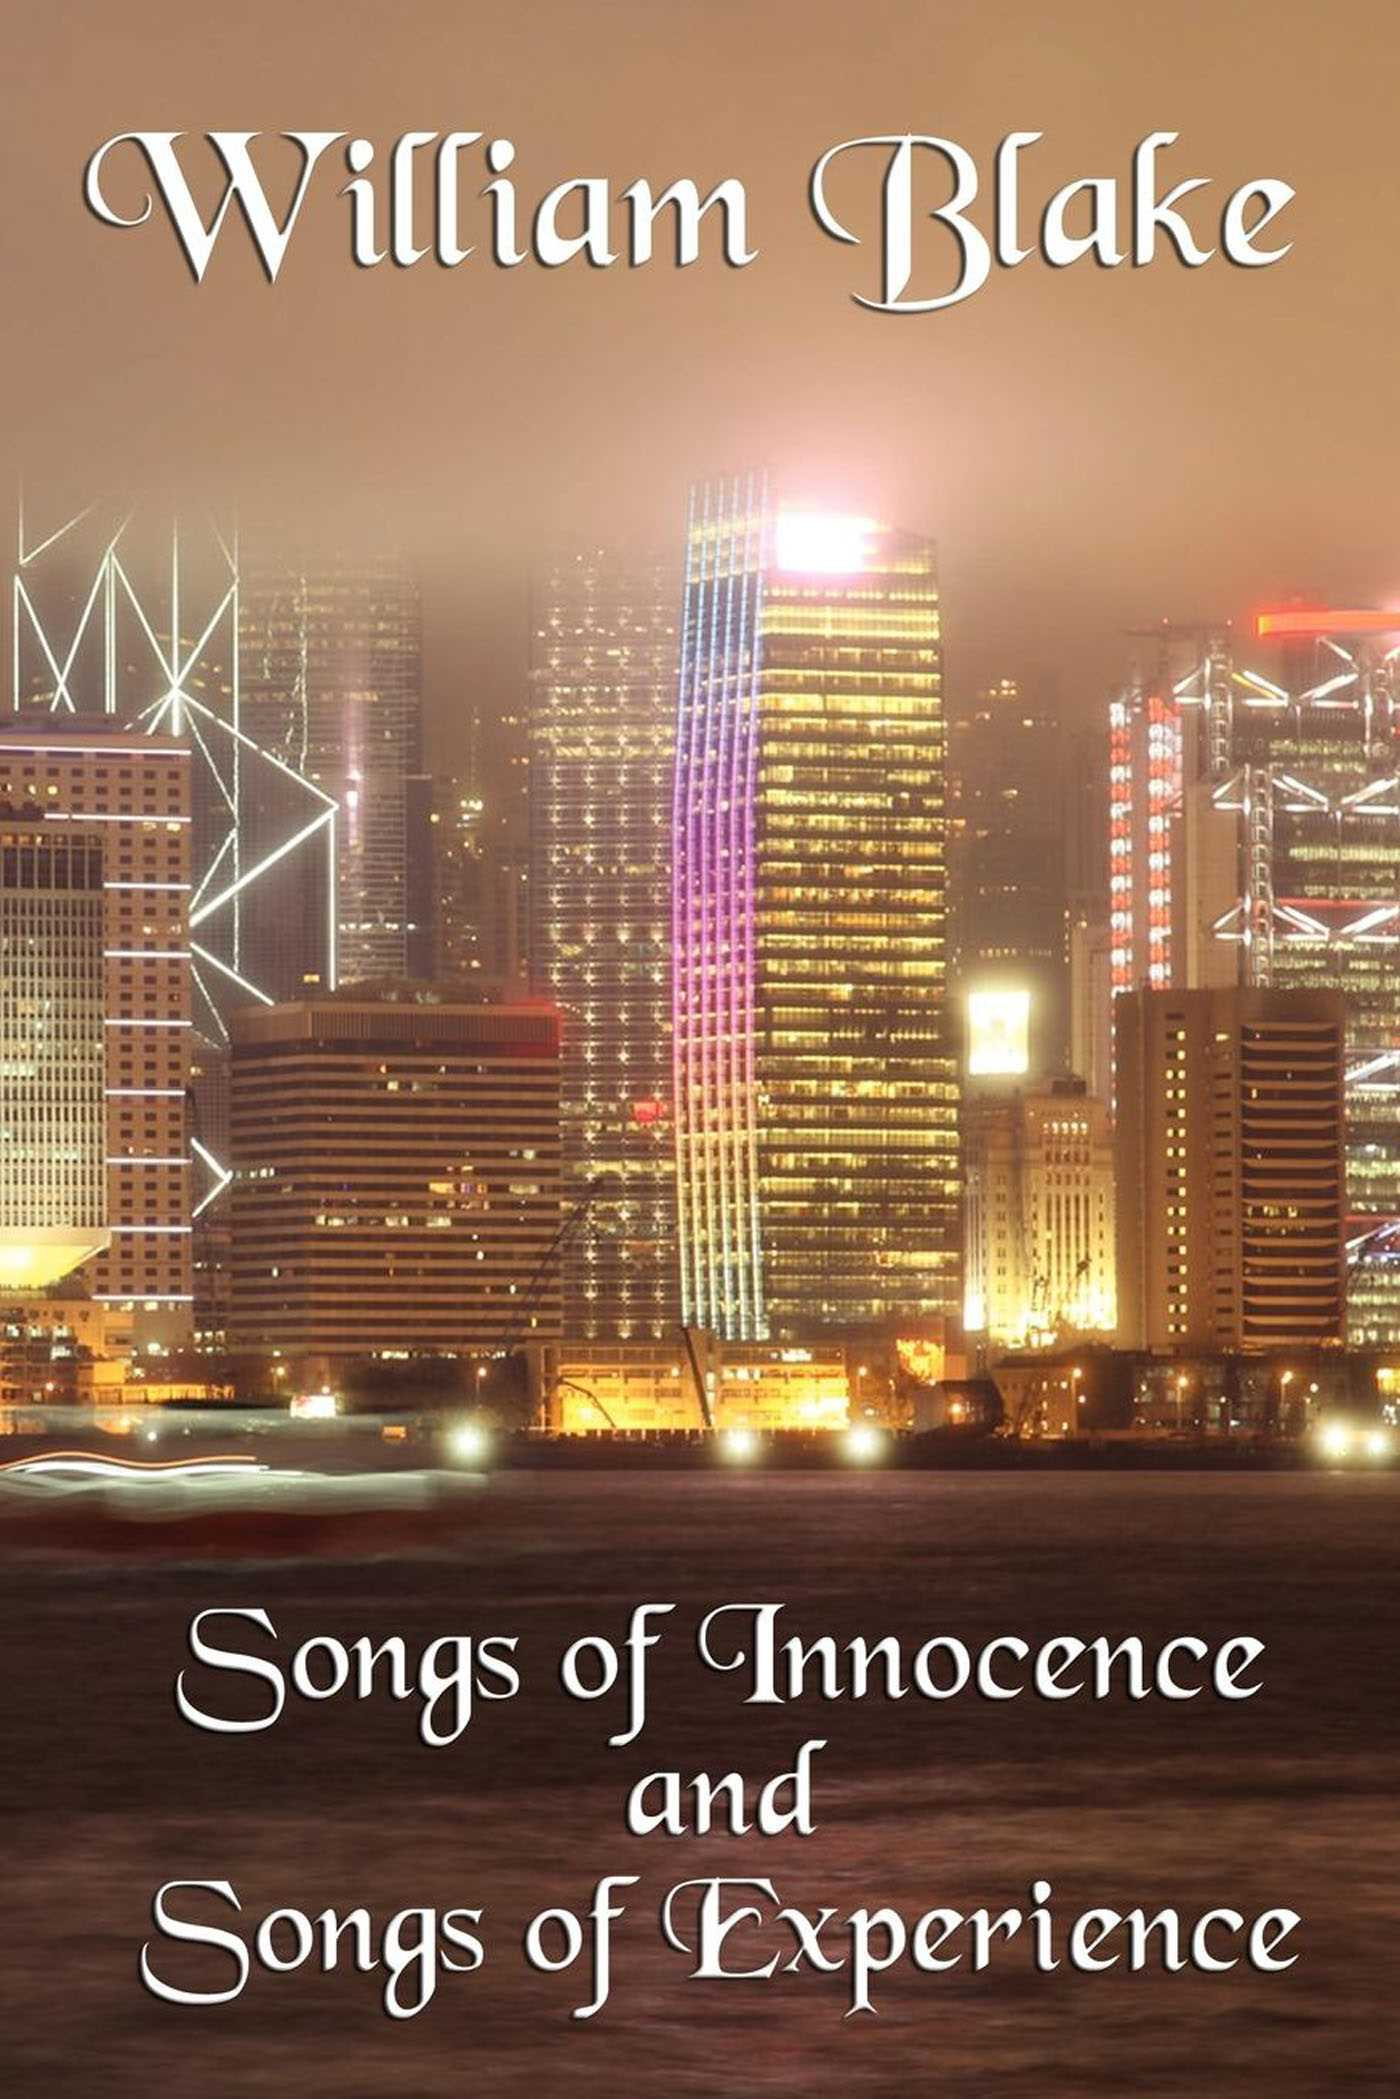 Songs of innocence and songs of experience 9781627933605 hr